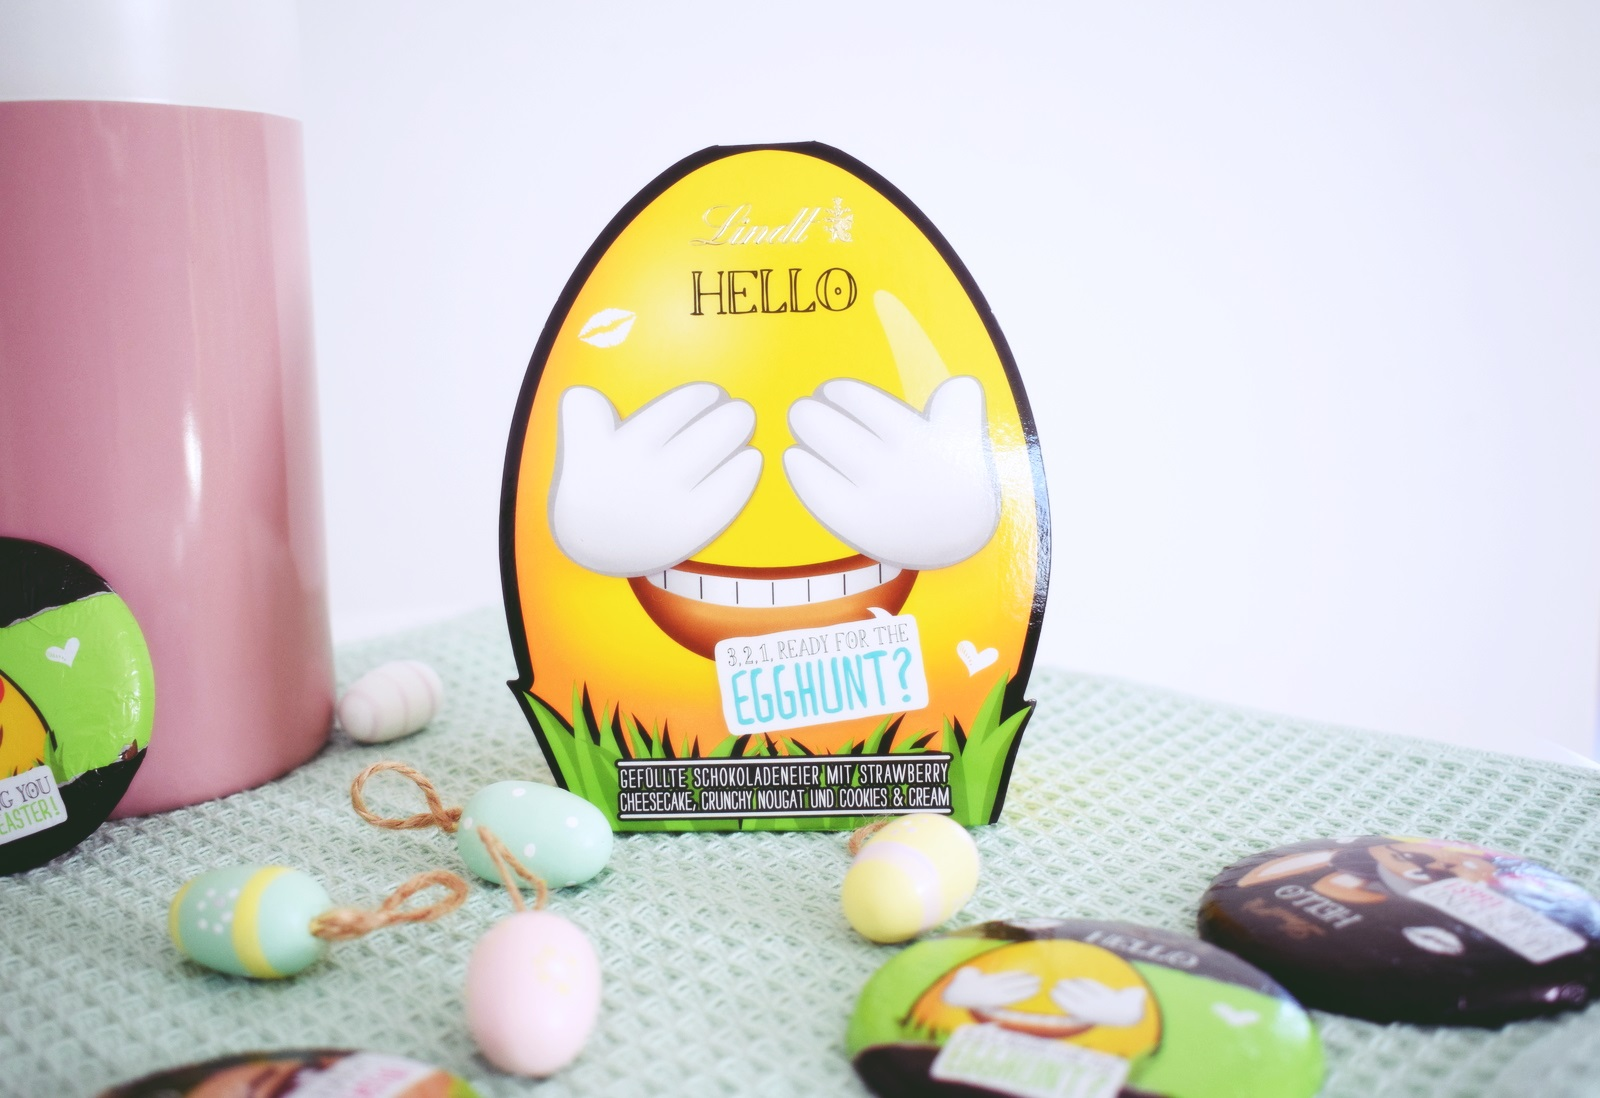 Lindt HELLO Osterm